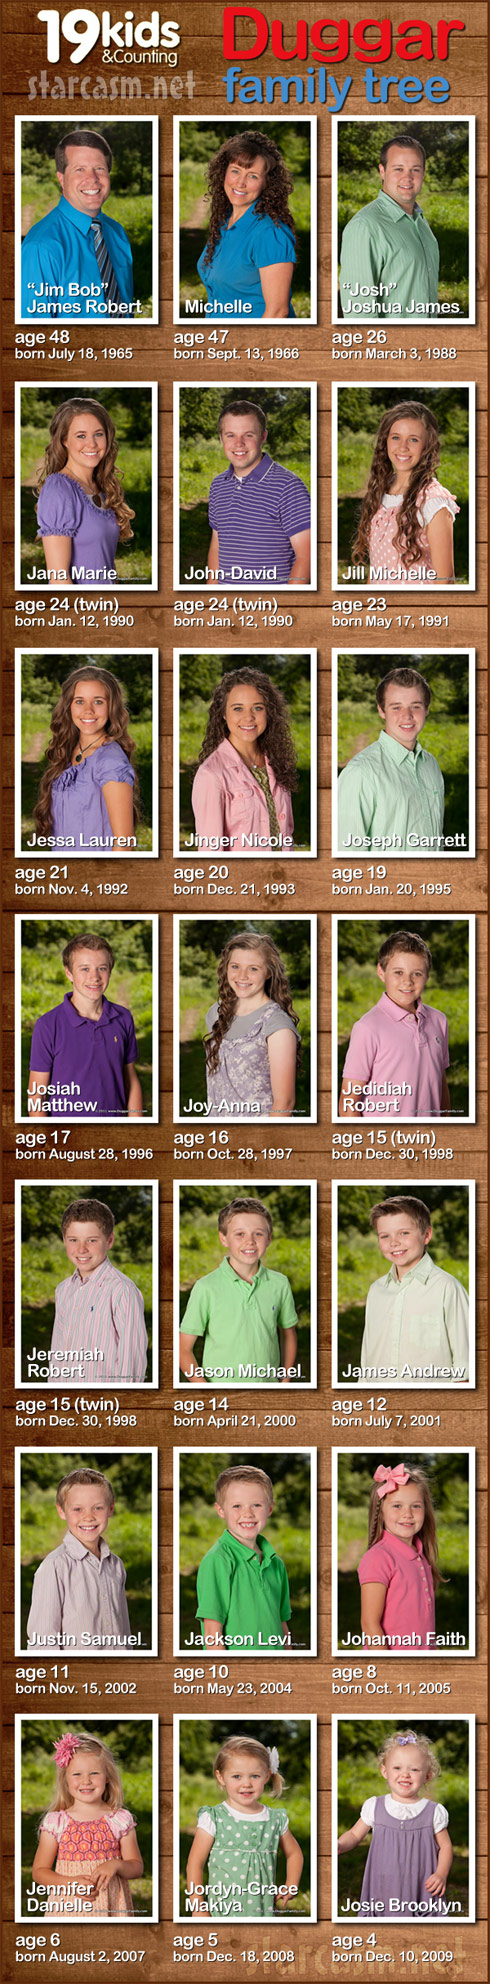 Photos of all the Duggar children from 19 Kids & Counting with ages and birthdays